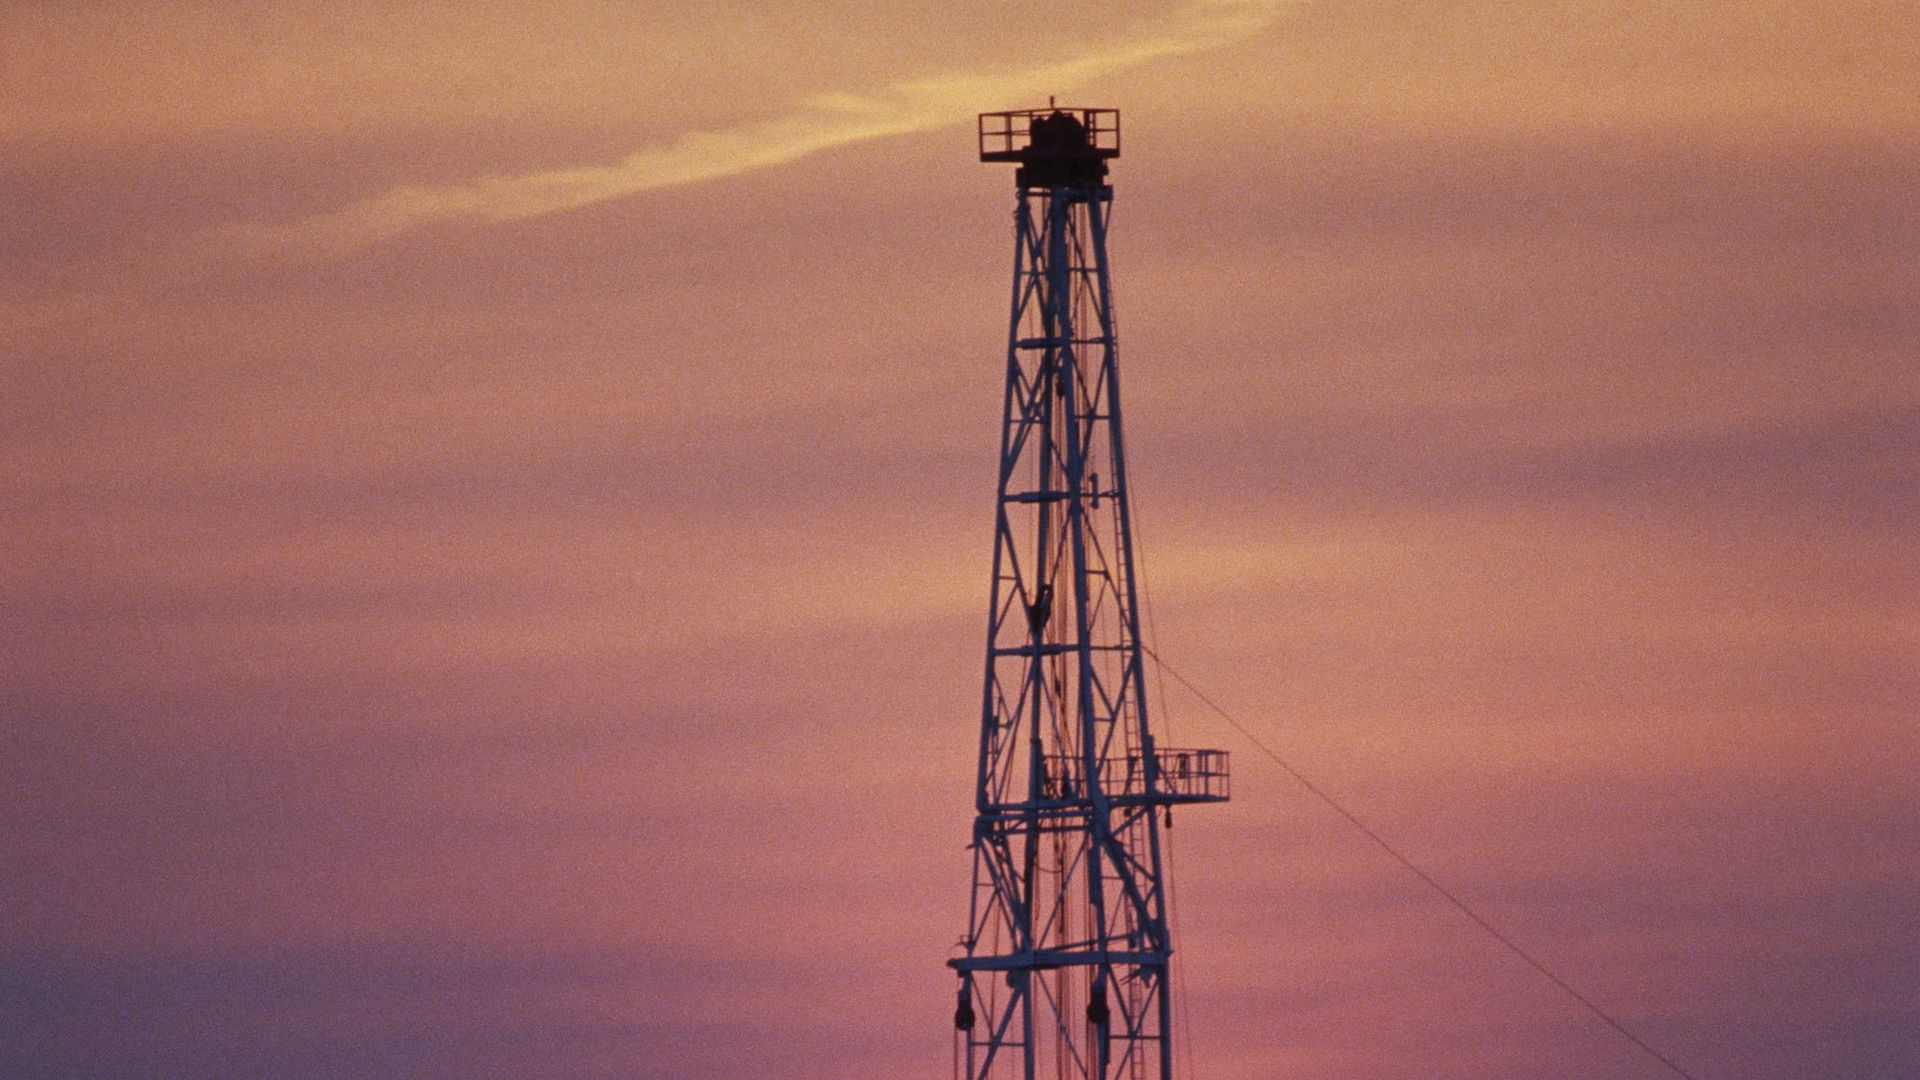 An oil well at sunset is silhouetted at sunset outside Jeddah, Saudi Arabia.